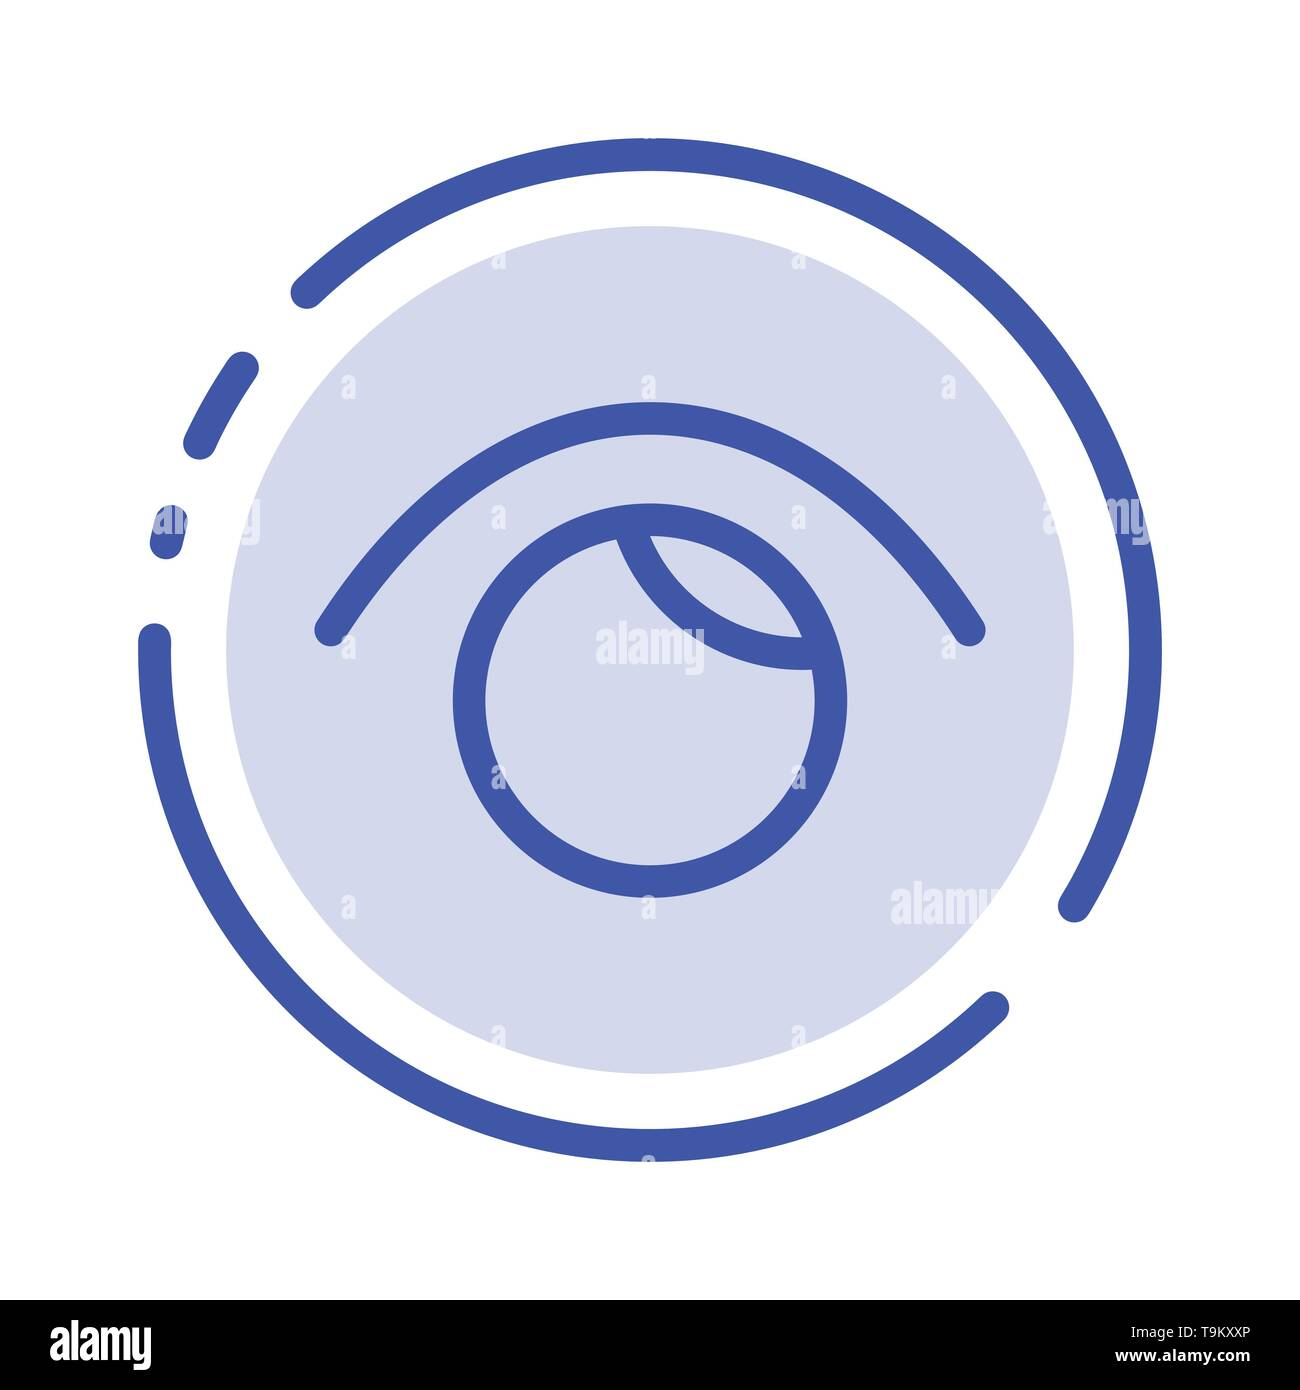 Eye, View, Watch, Twitter Blue Dotted Line Line Icon - Stock Image